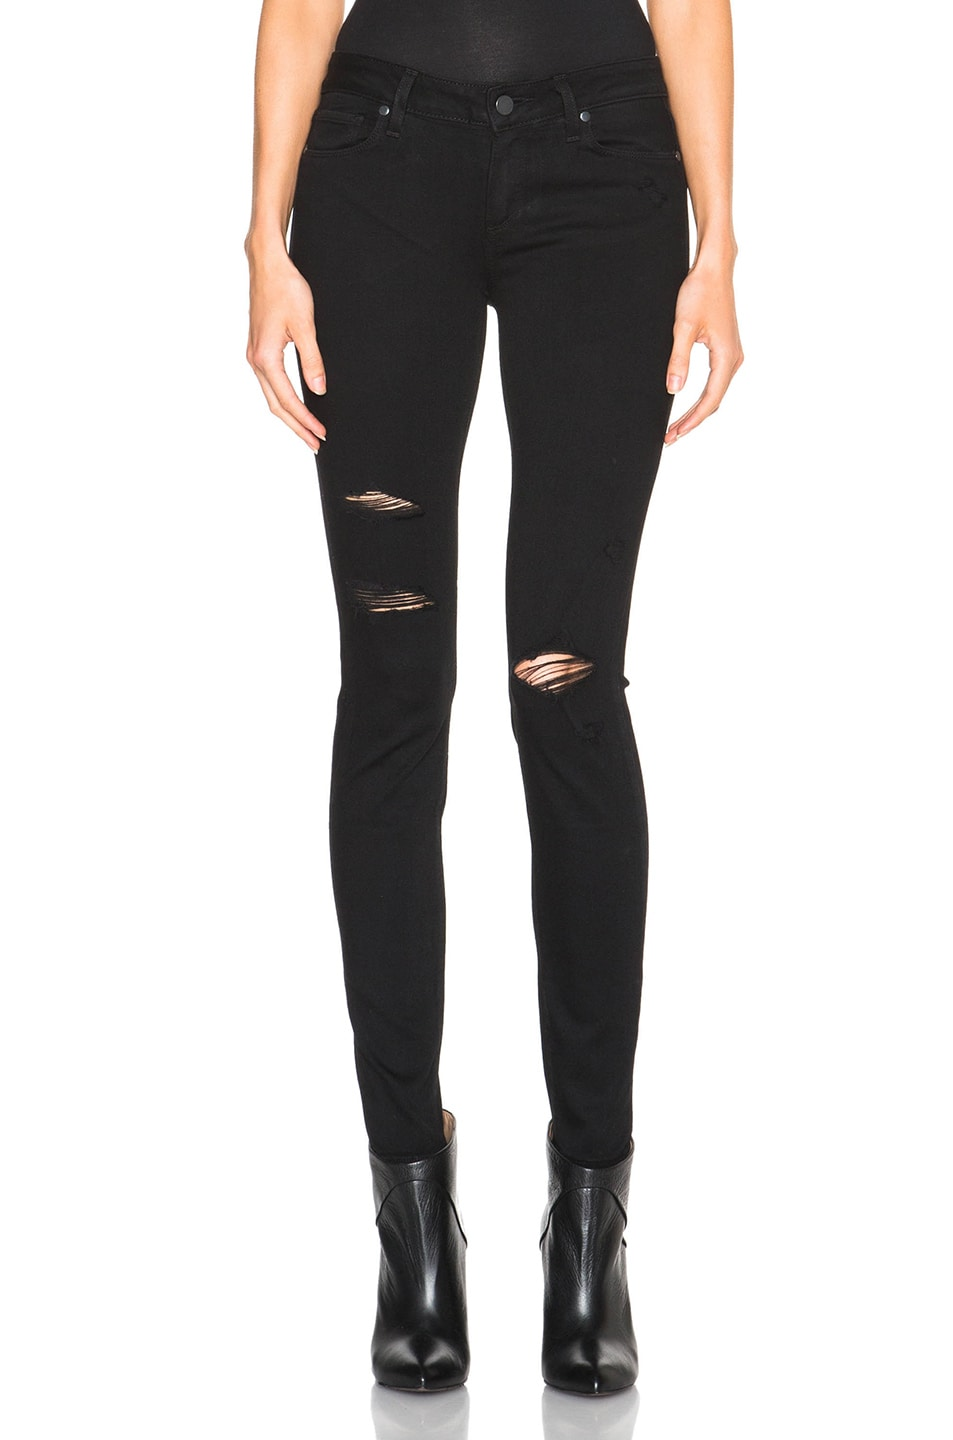 Image 1 of PAIGE Verdugo Ultra Skinny in Black Shadow Destructed